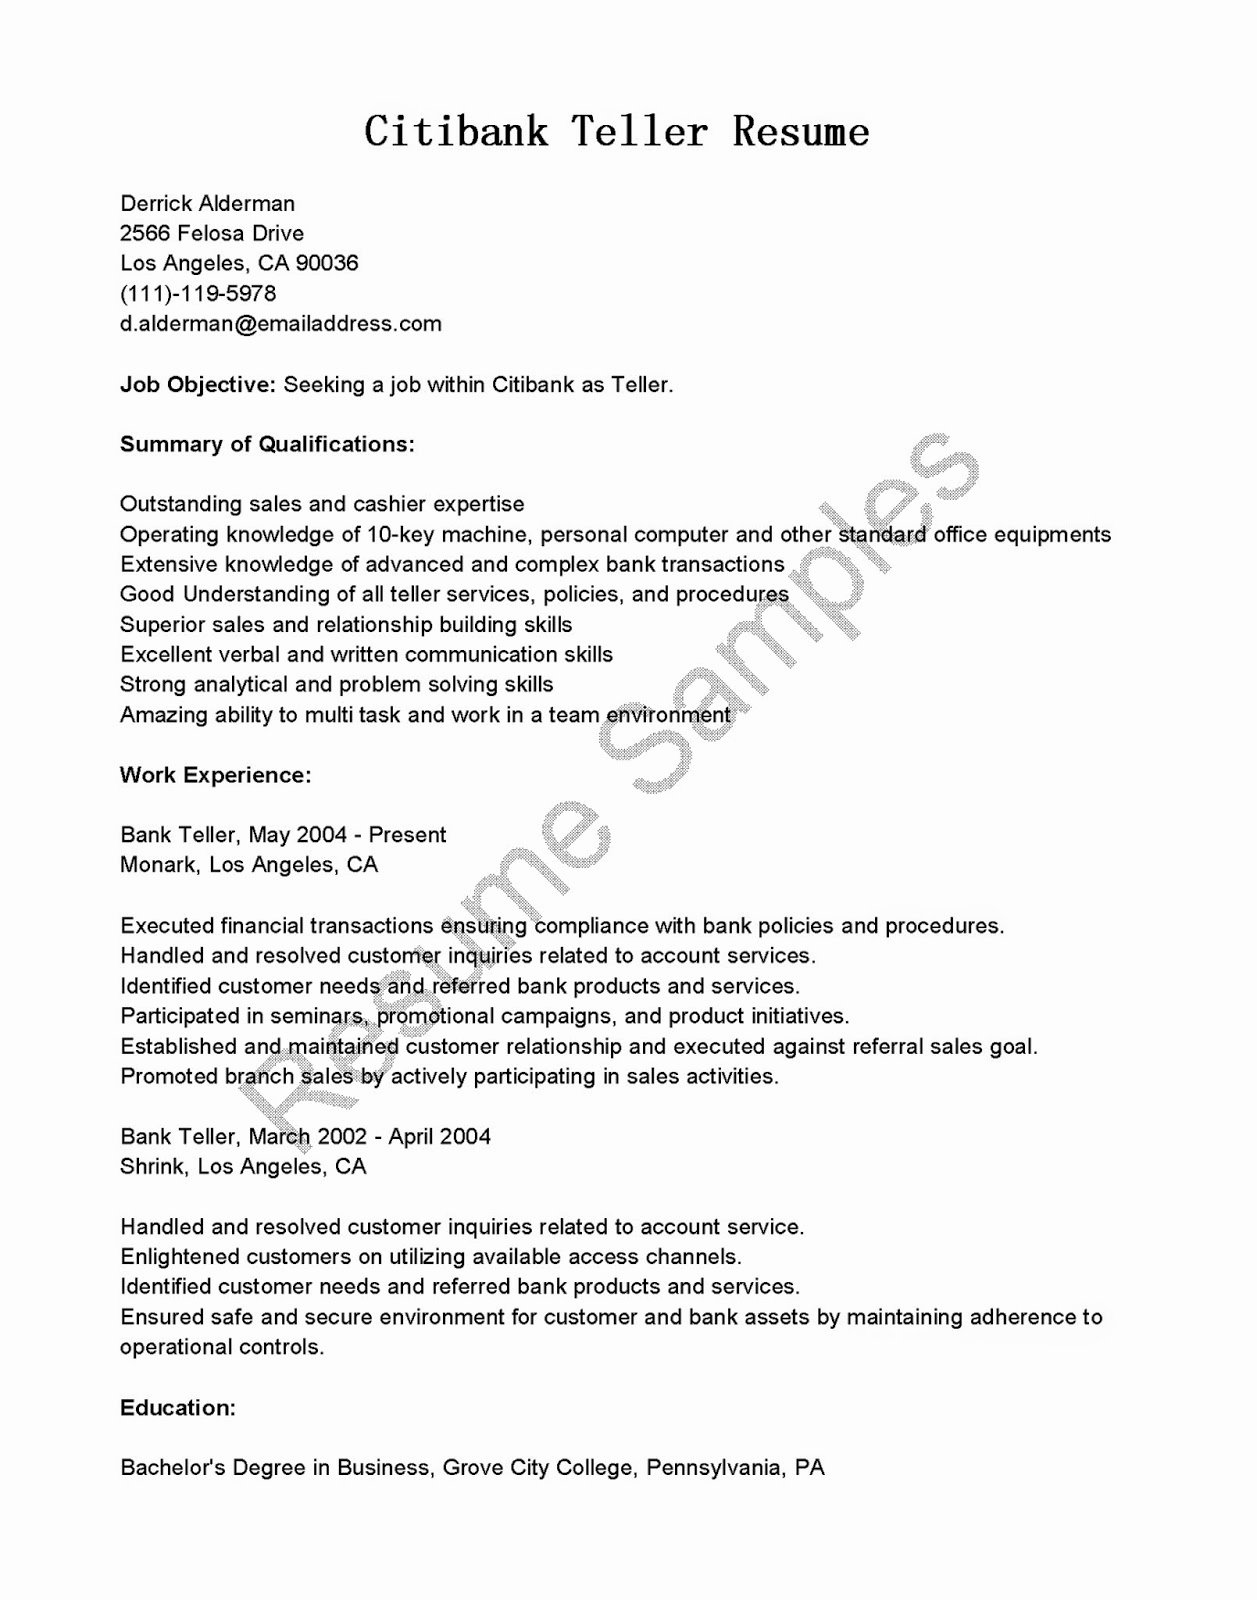 Resume Samples Citibank Teller Resume Sample